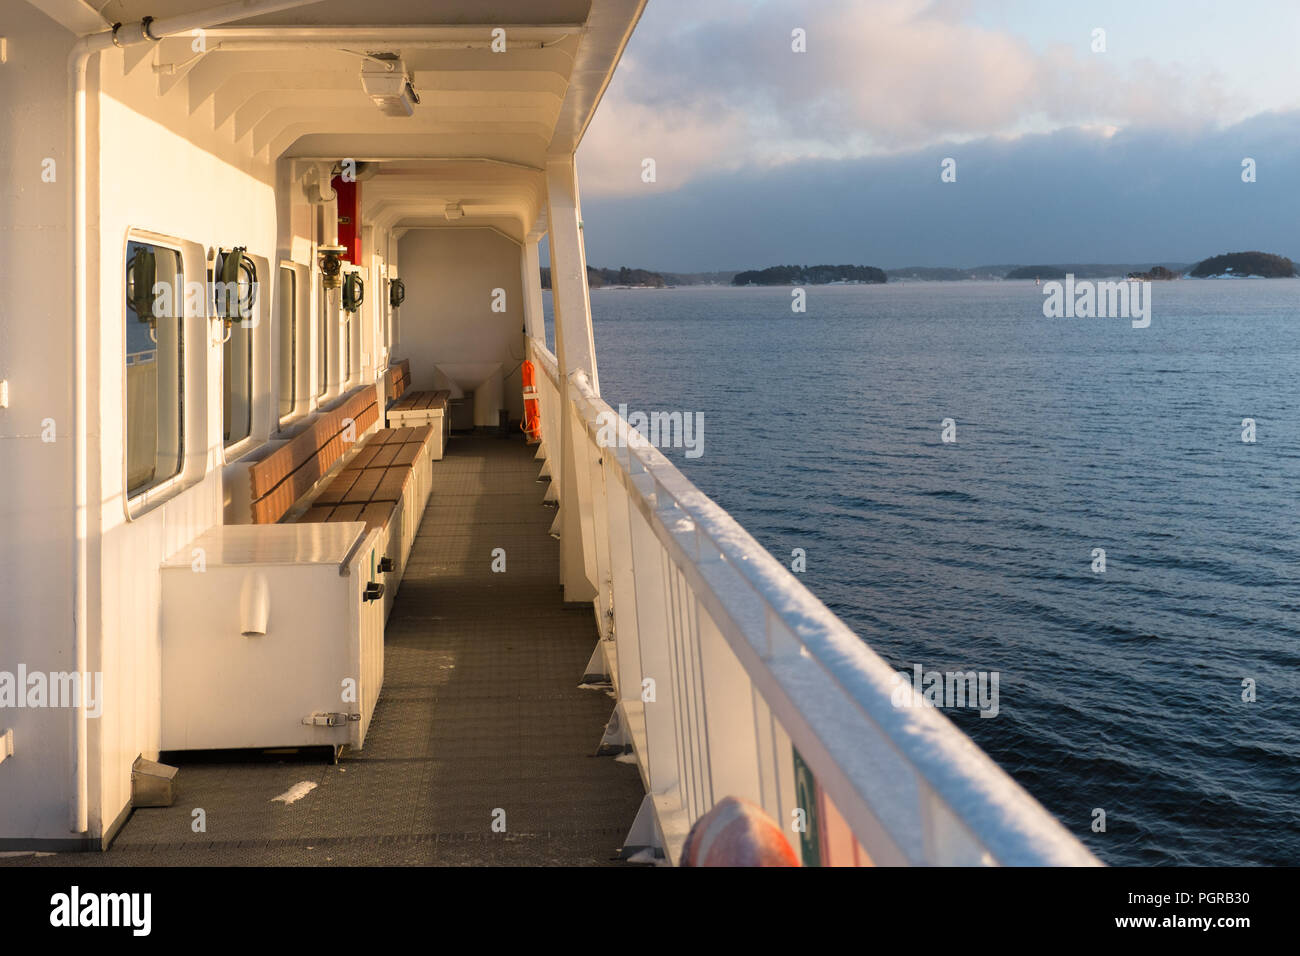 ferry in skerry landscape - Stock Image